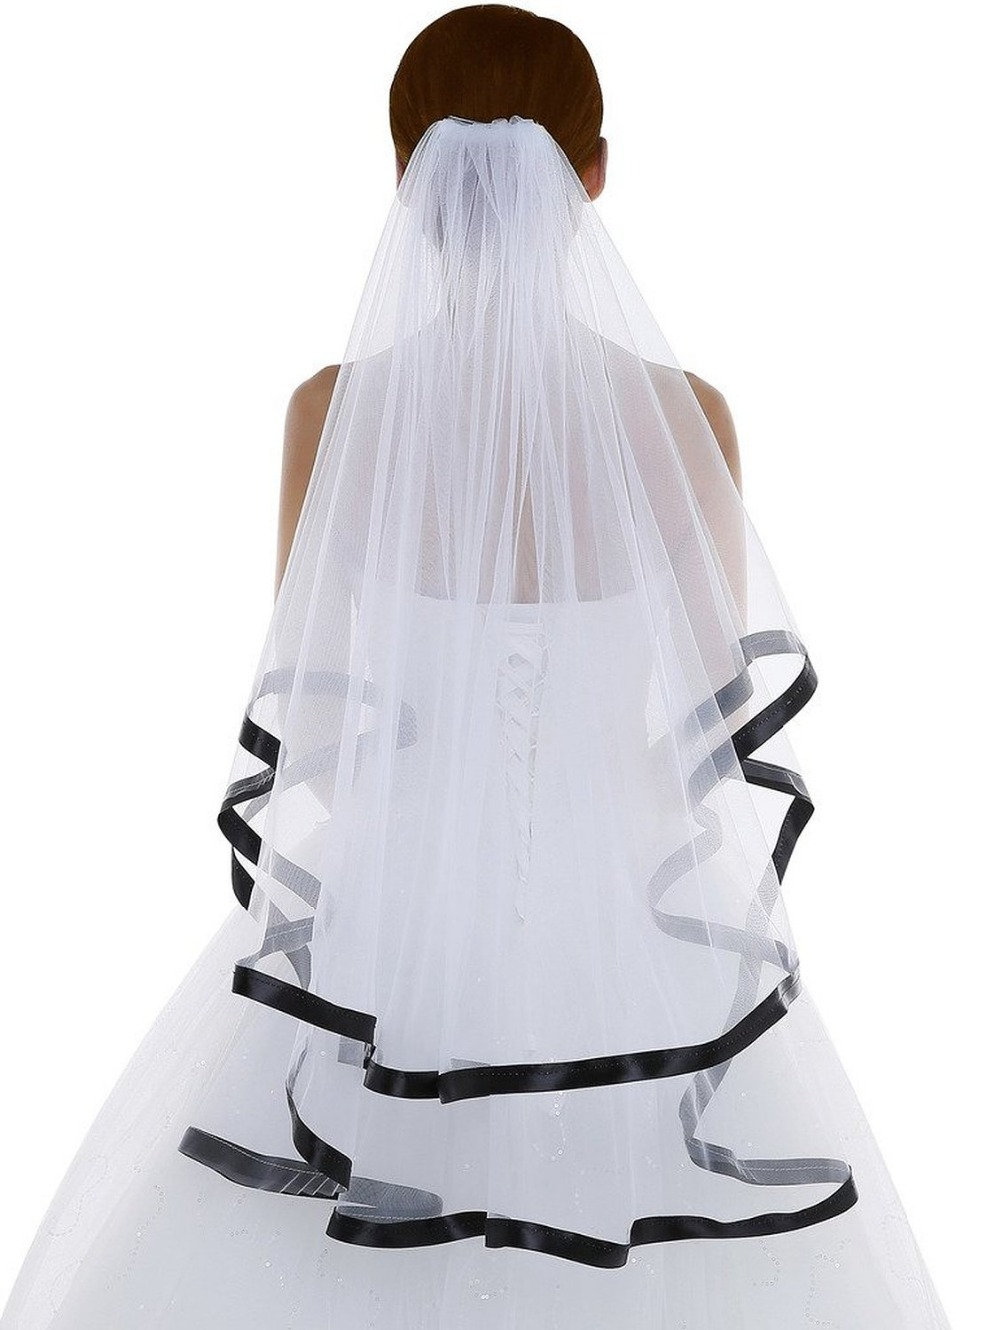 White Short Wedding Veil With Black Ribbon Edge Ivory Veils Comb 2 Layer Bridal Accessories Women Veu De Novia In From